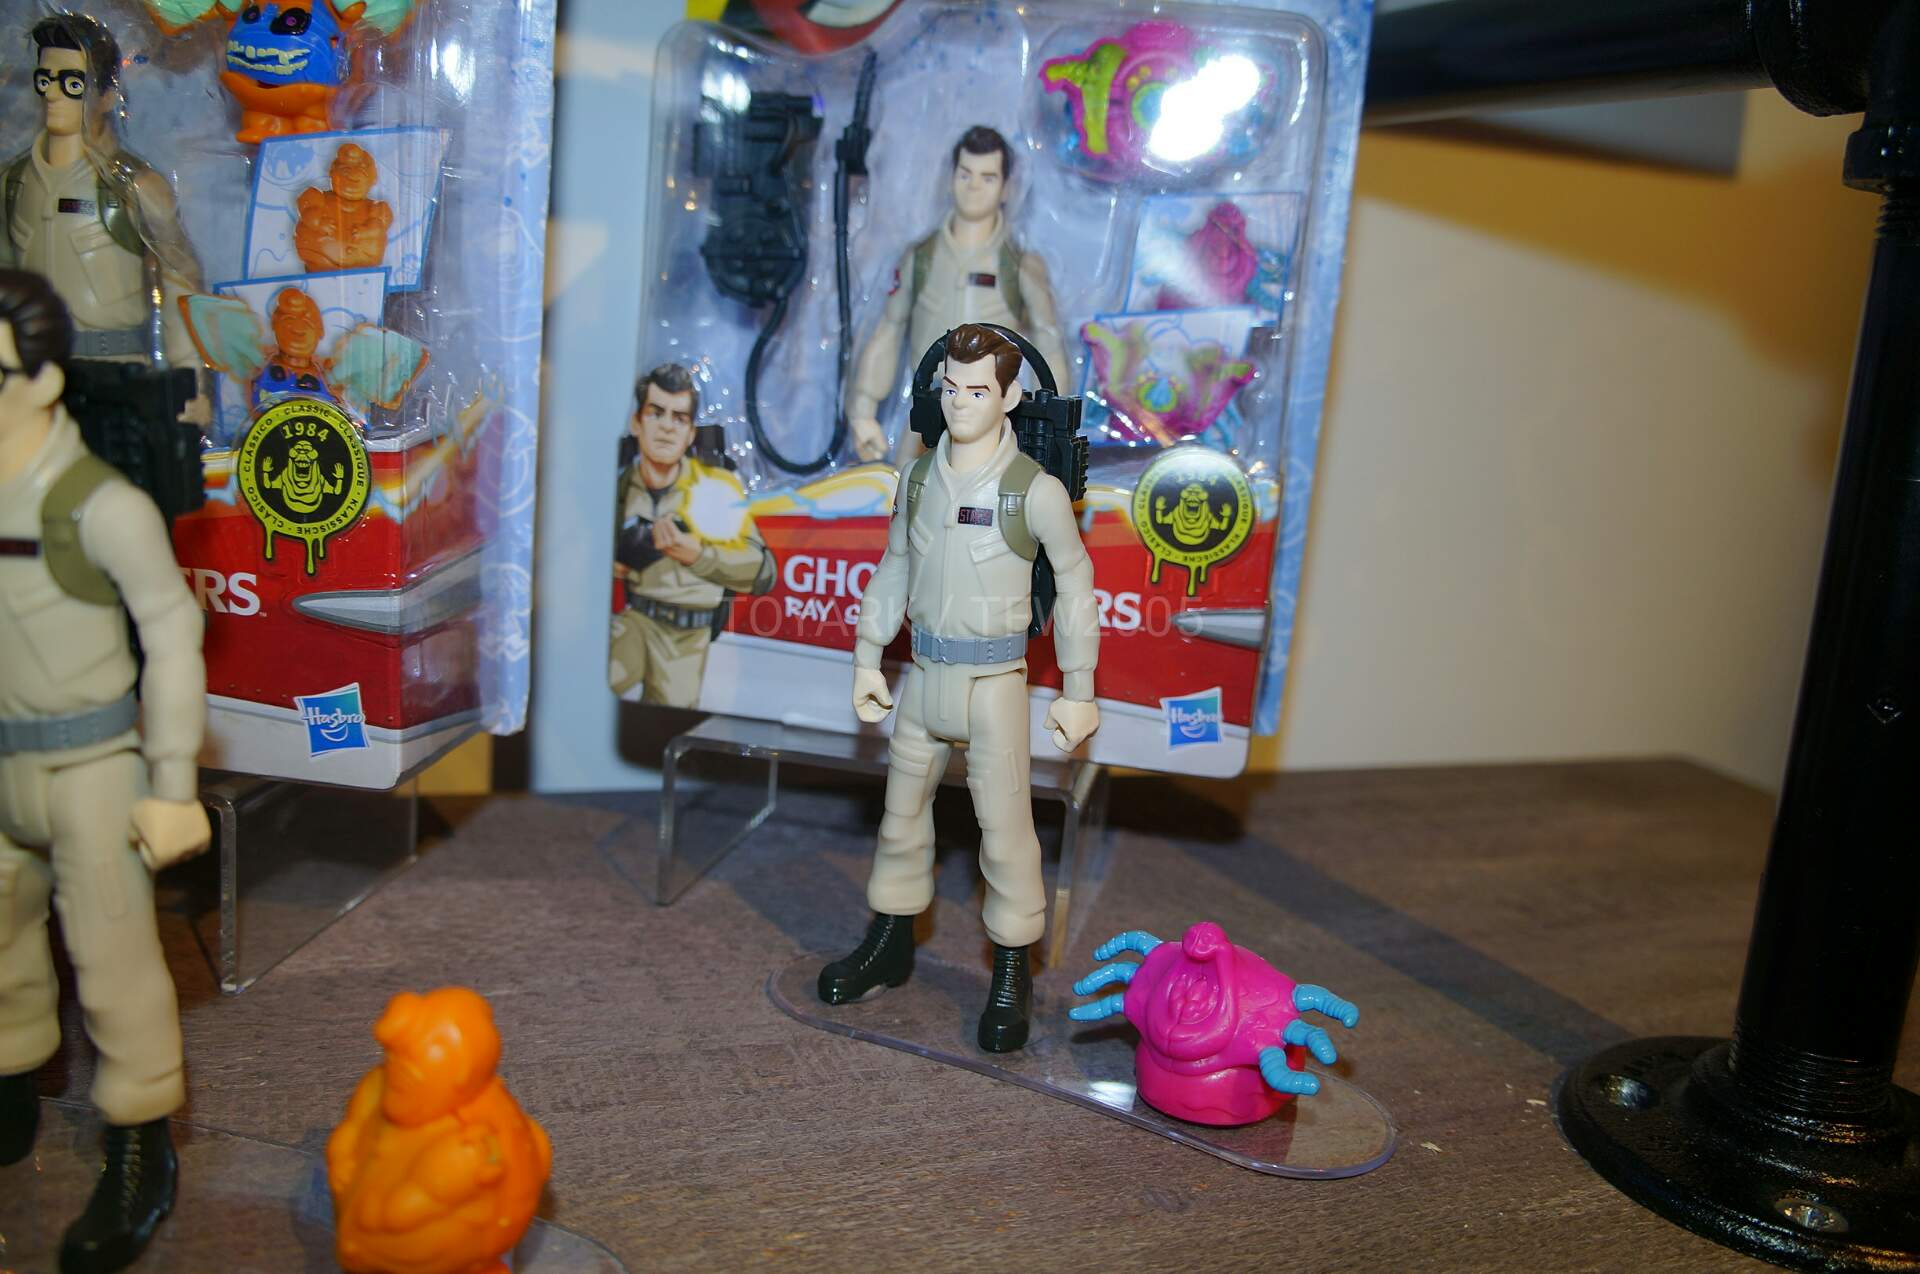 Toy-Fair-2020-Hasbro-Ghostbusters-054.jpg